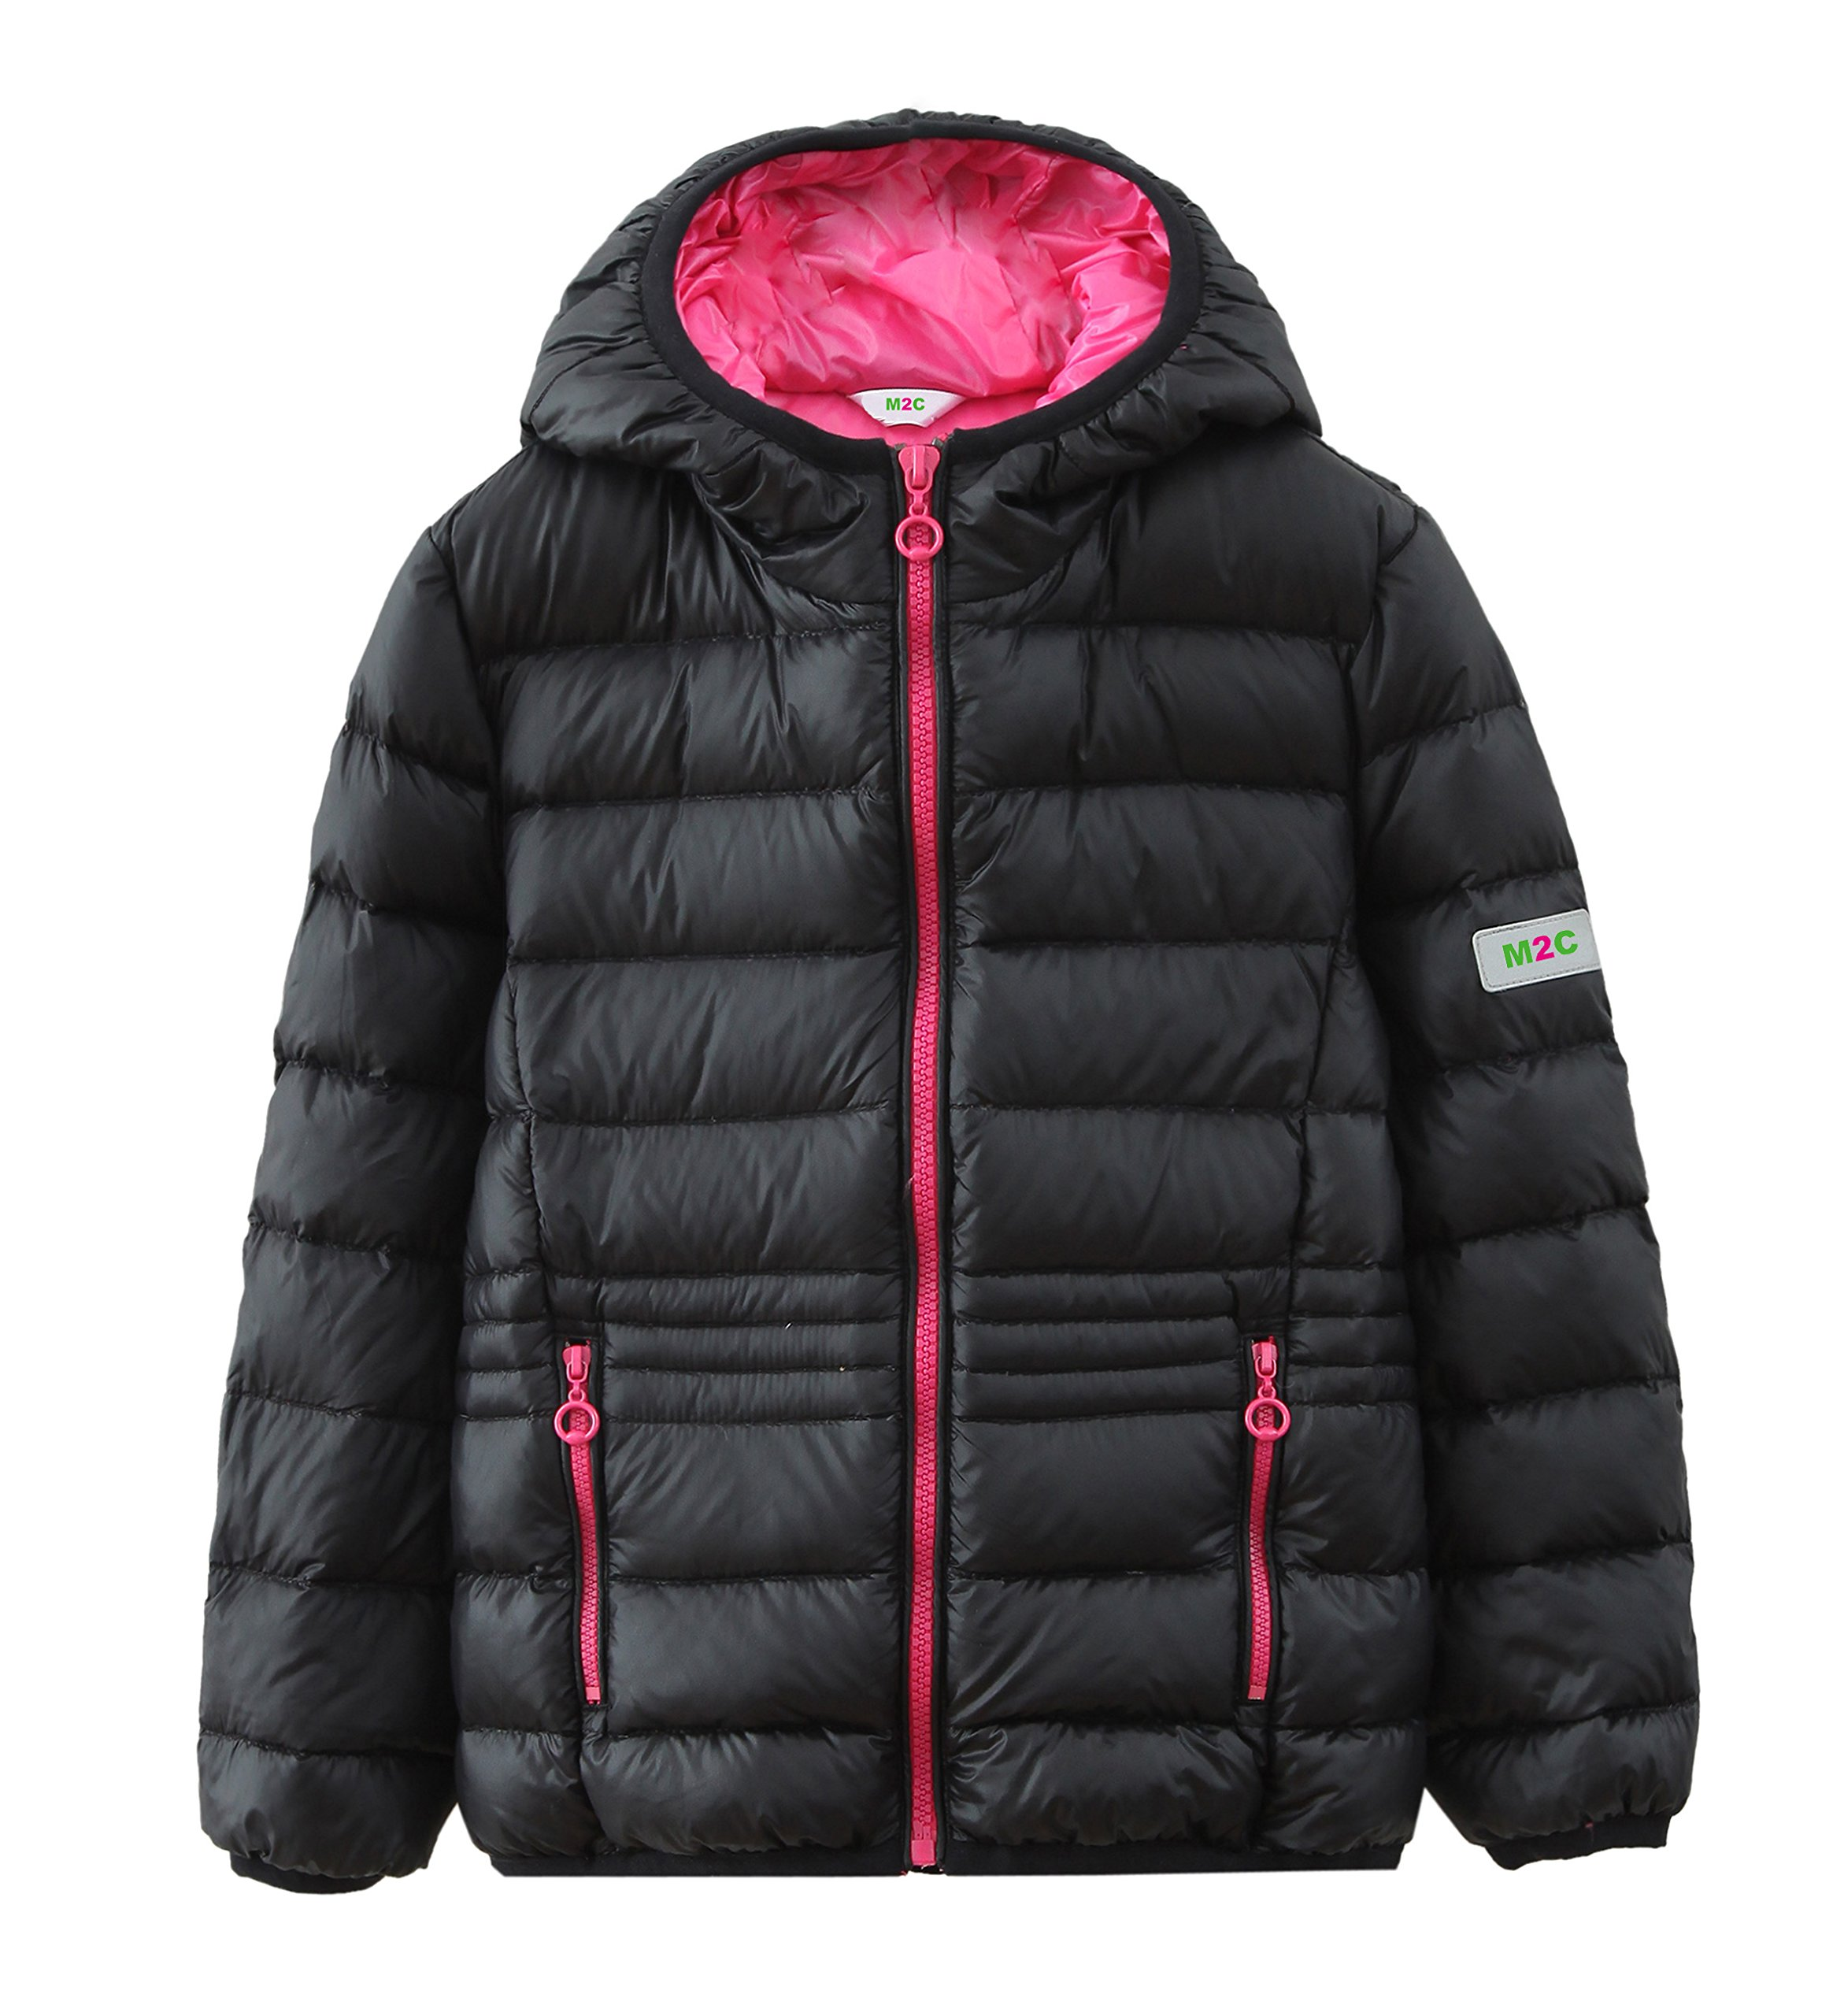 M2C Youth Lightweight Puffer Down Jacket with Hood Medium Black